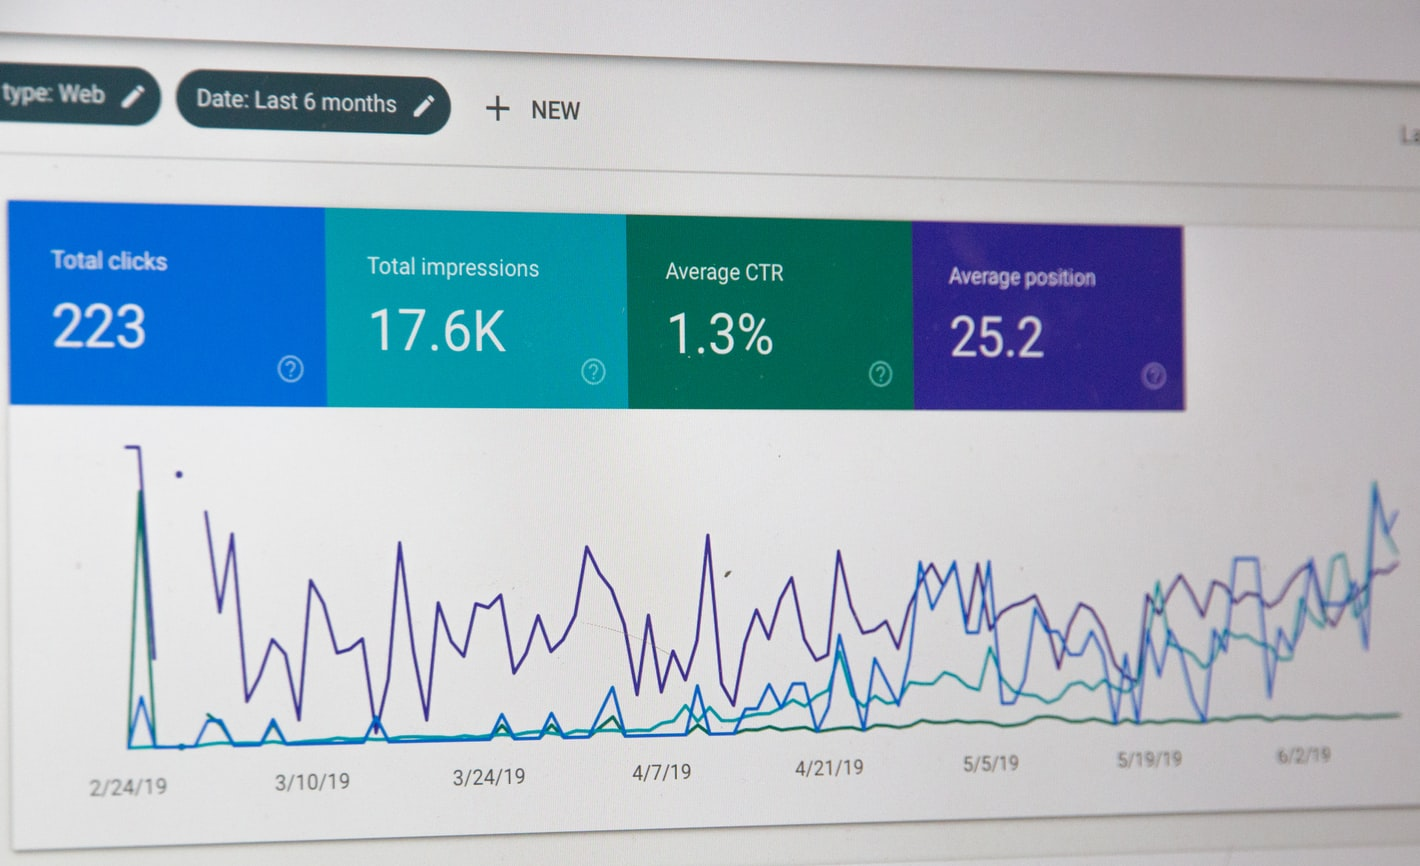 Screenshot of PPC metrics: Clicks and Impressions